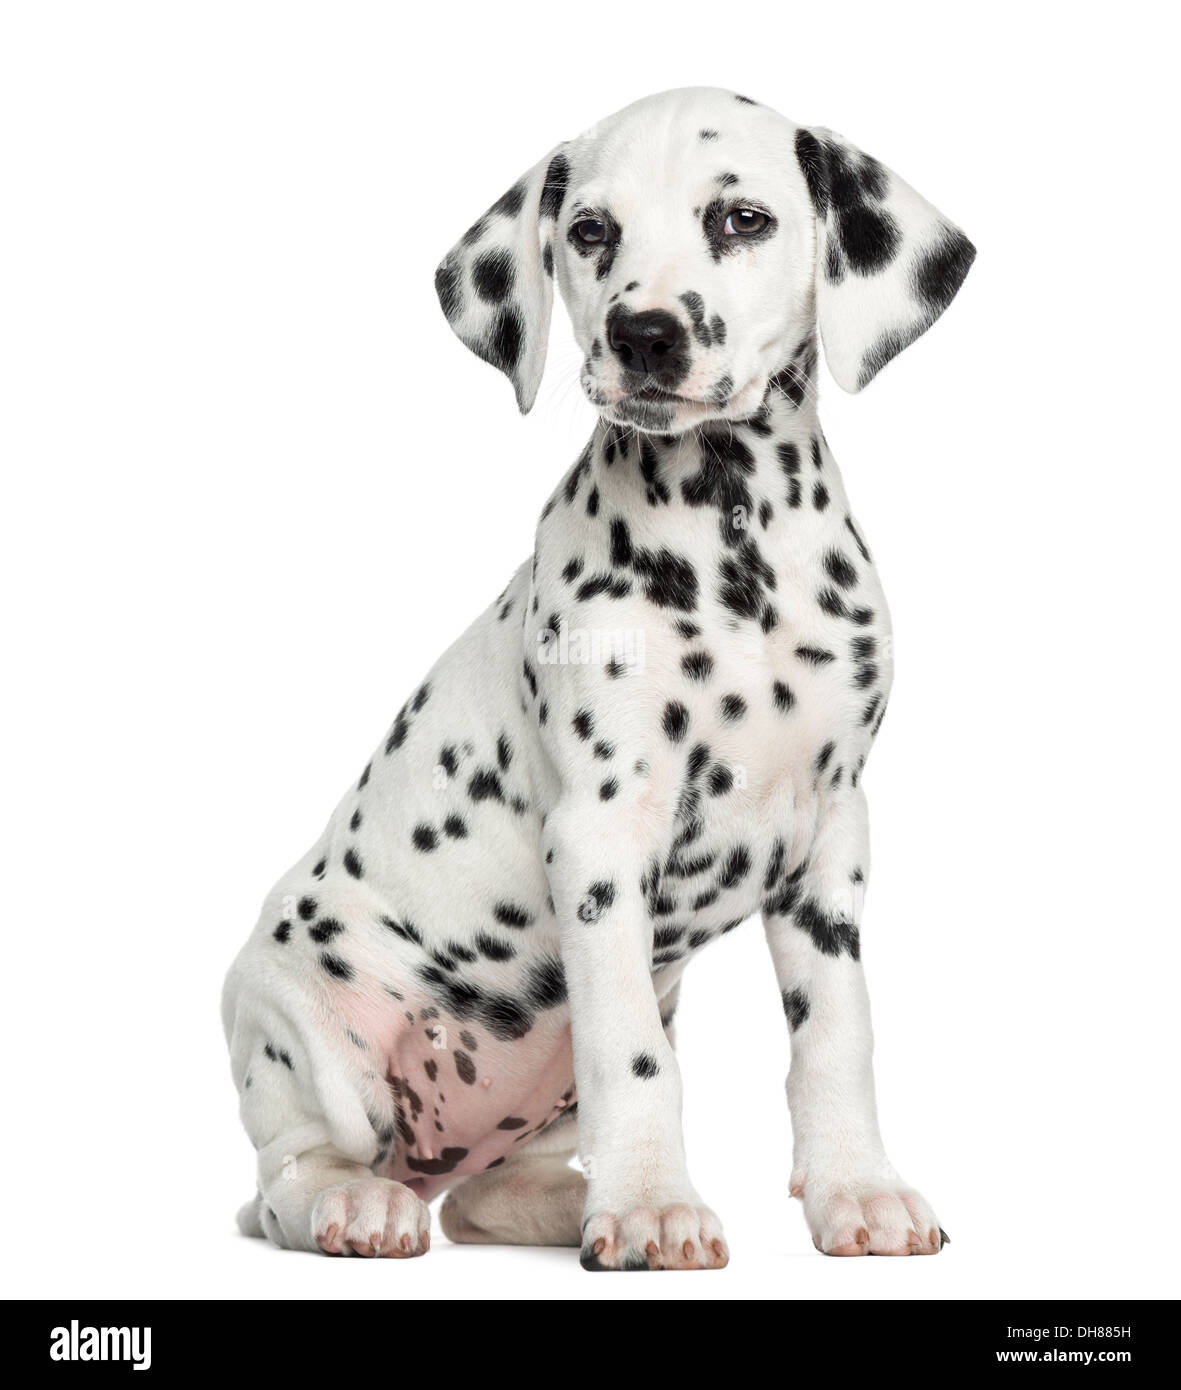 Front view of a Dalmatian puppy sitting against white background - Stock Image